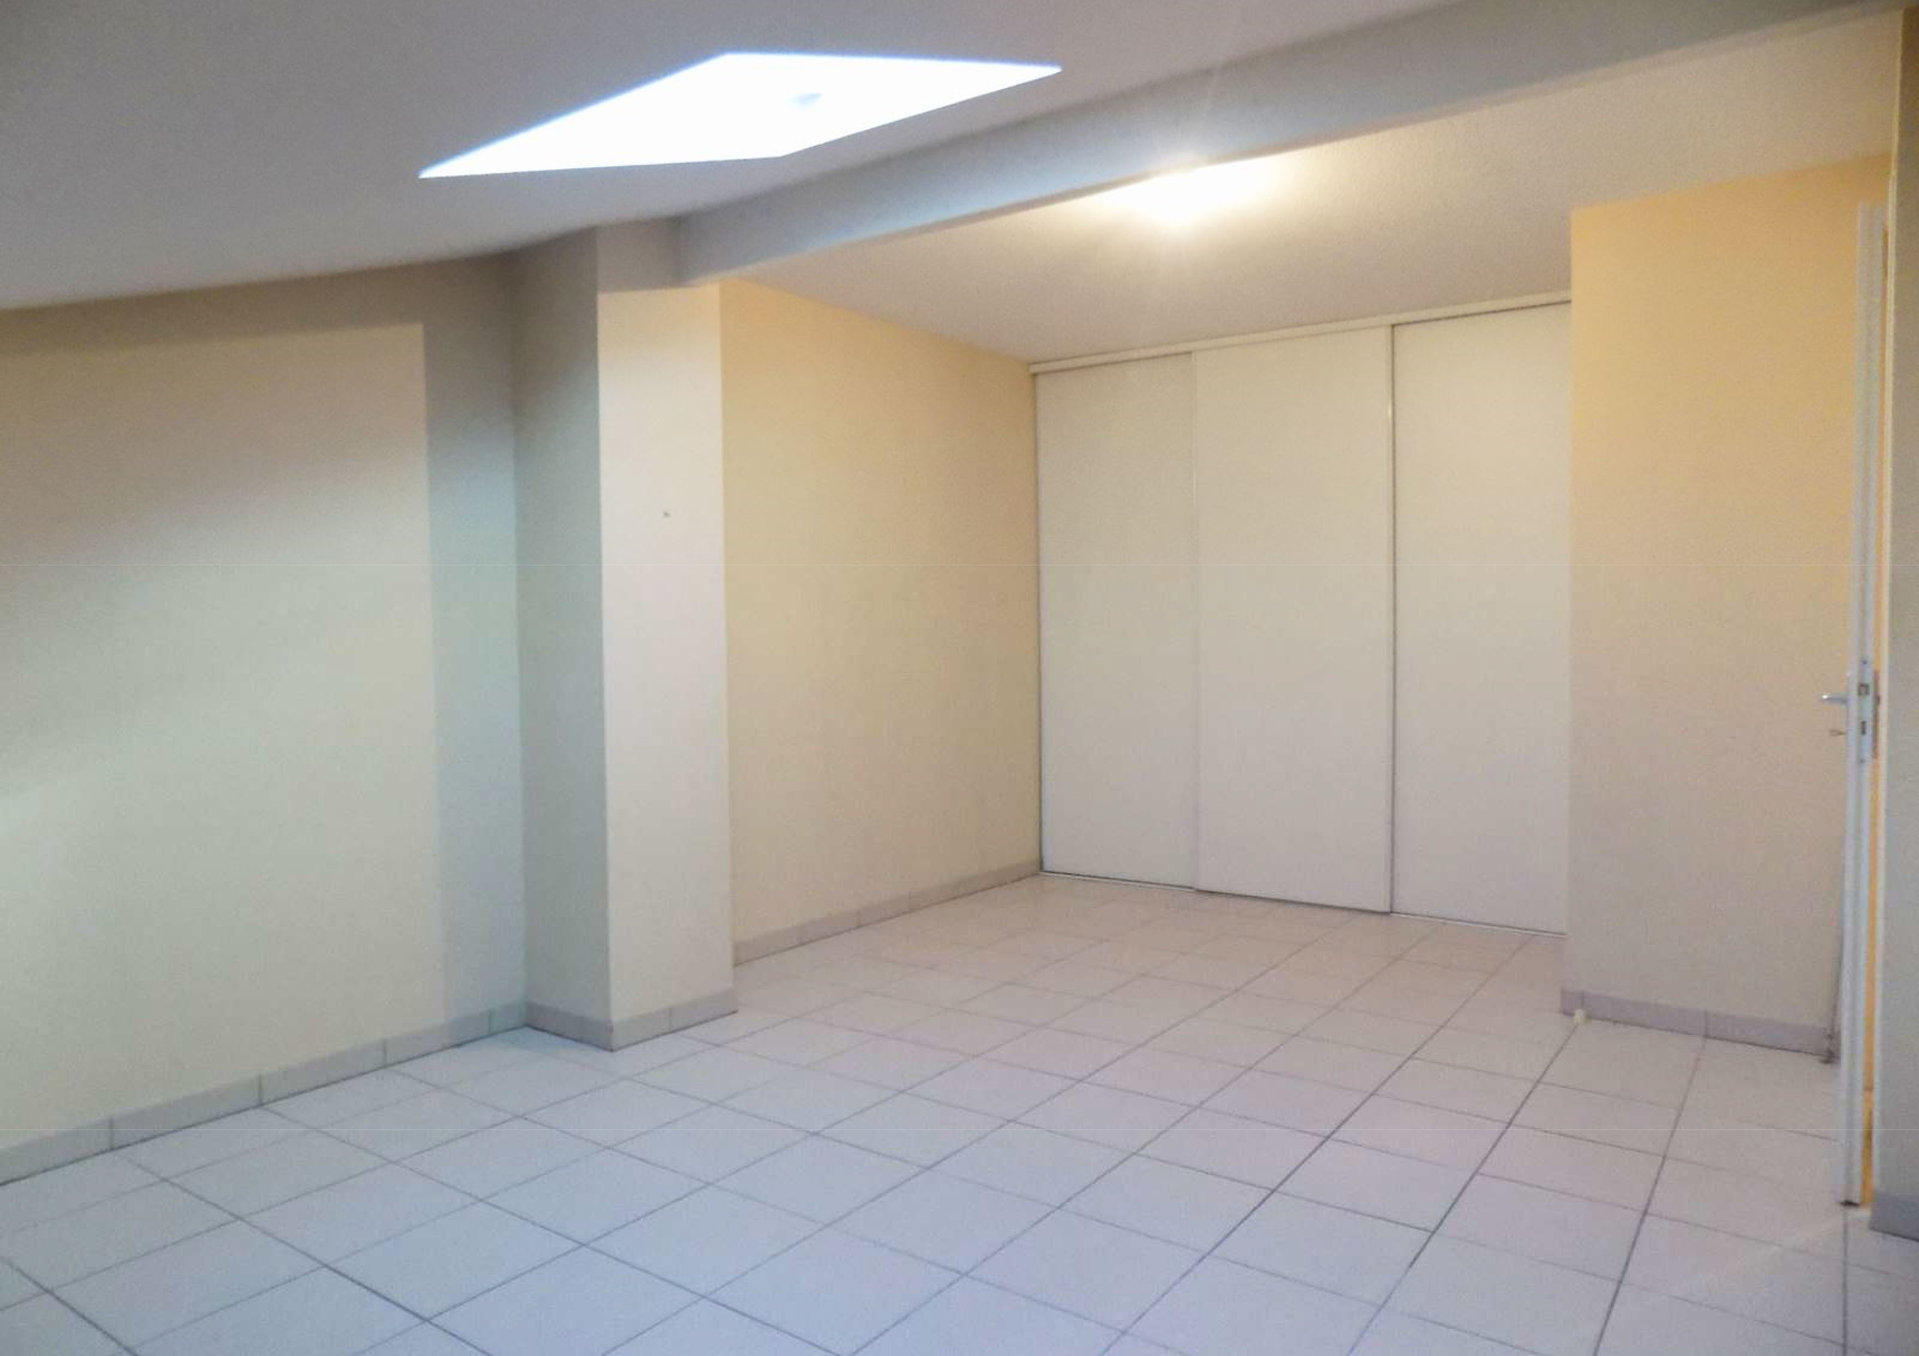 Appartement T2 Duplex - 51m² - 31200 TOULOUSE